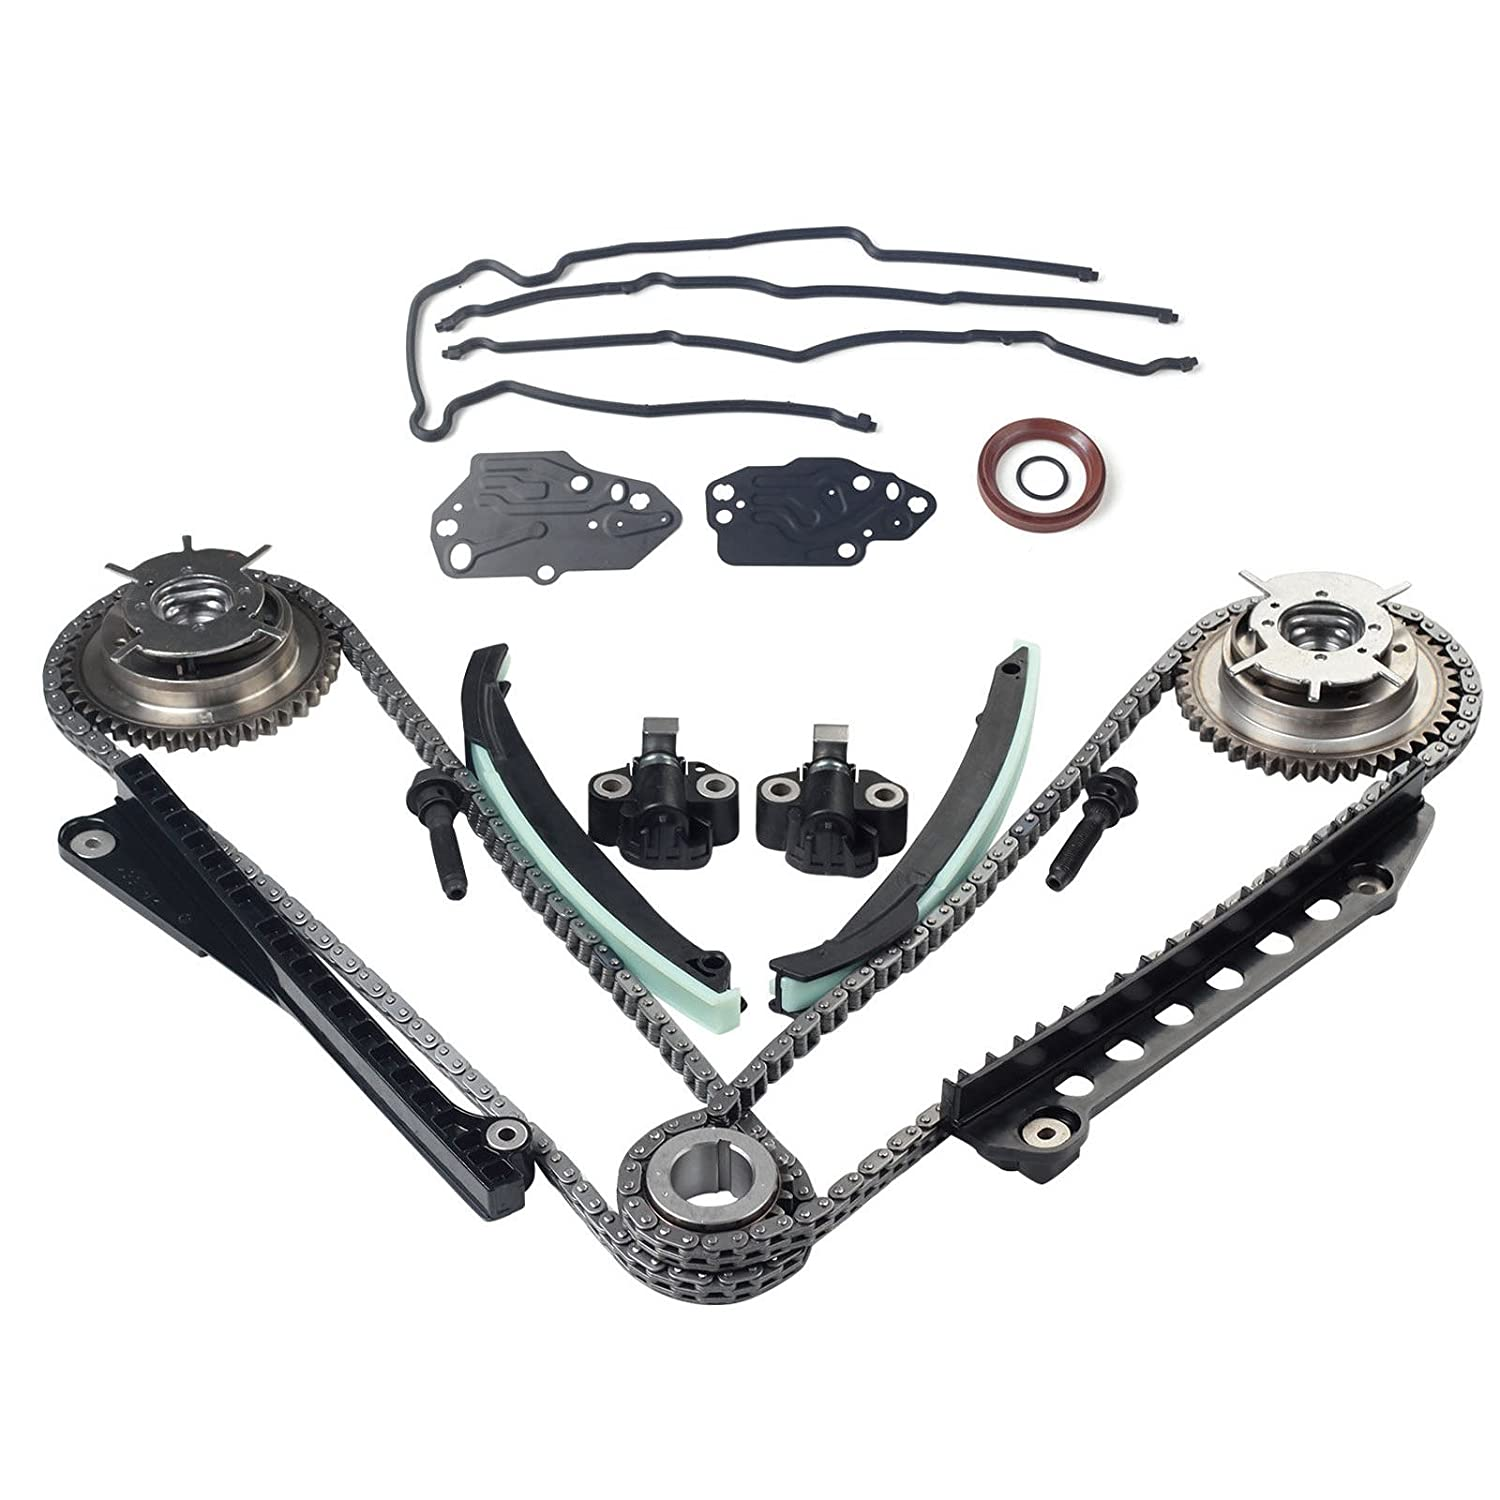 Timing Chain Kit Cam Phaser Timing Cover Gasket Seal Set for 05-13 Ford 5.4L (3-Valve) Engine Expedition F-150 F-250 & F-350 Super / Lincoln blackhorseracing